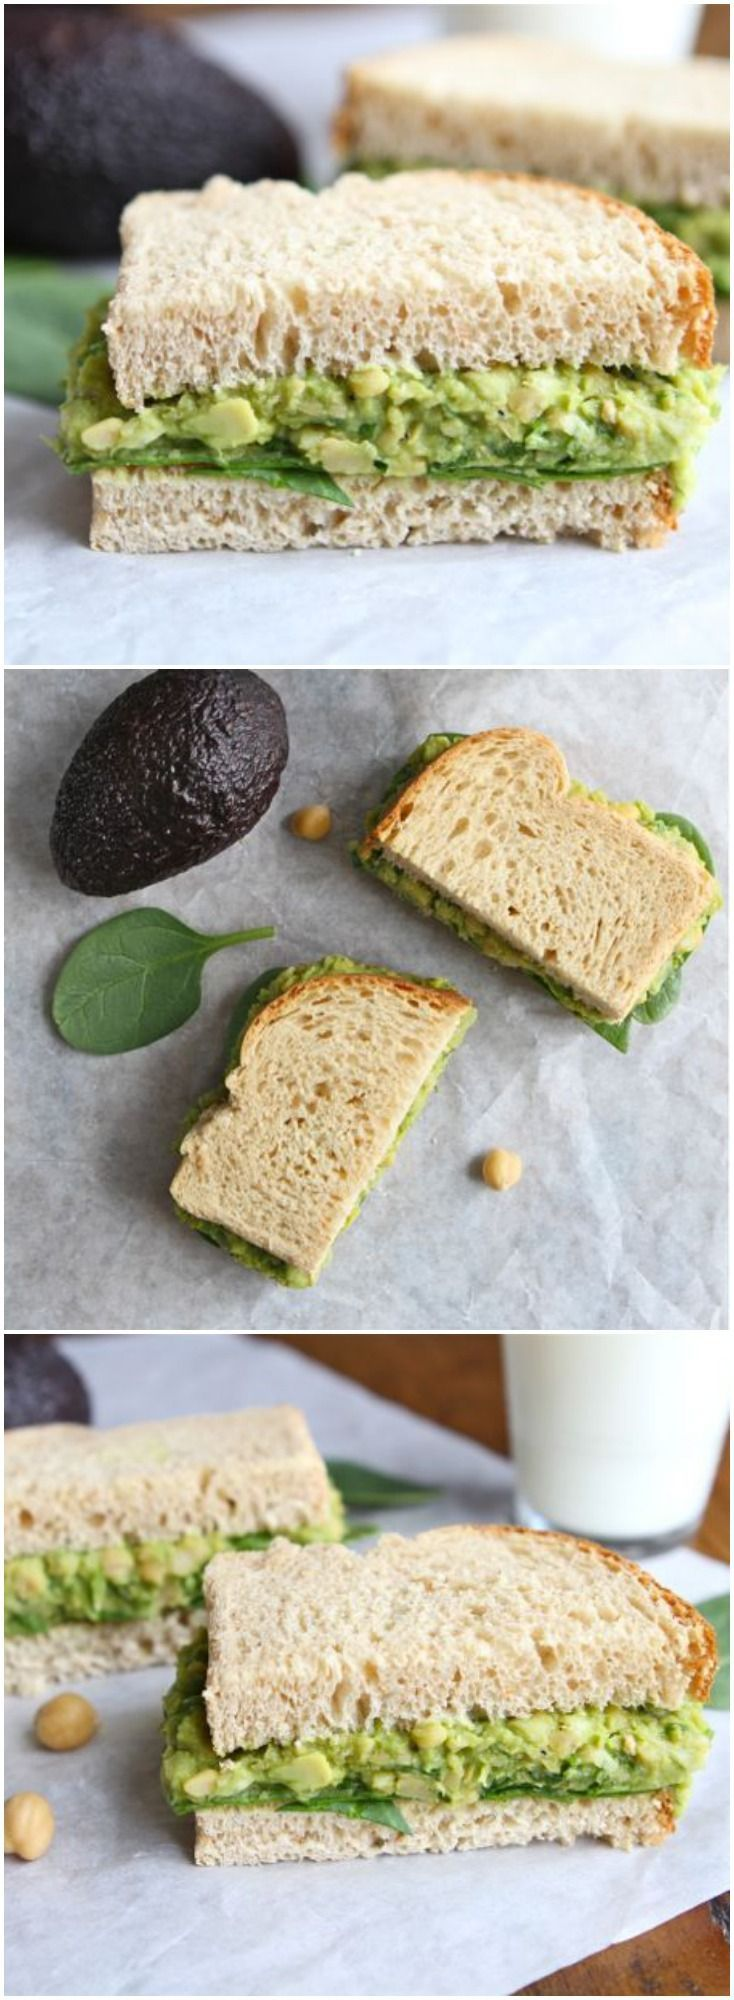 smashed chickpea amp avocado salad sandwich from @ twopeasandpod